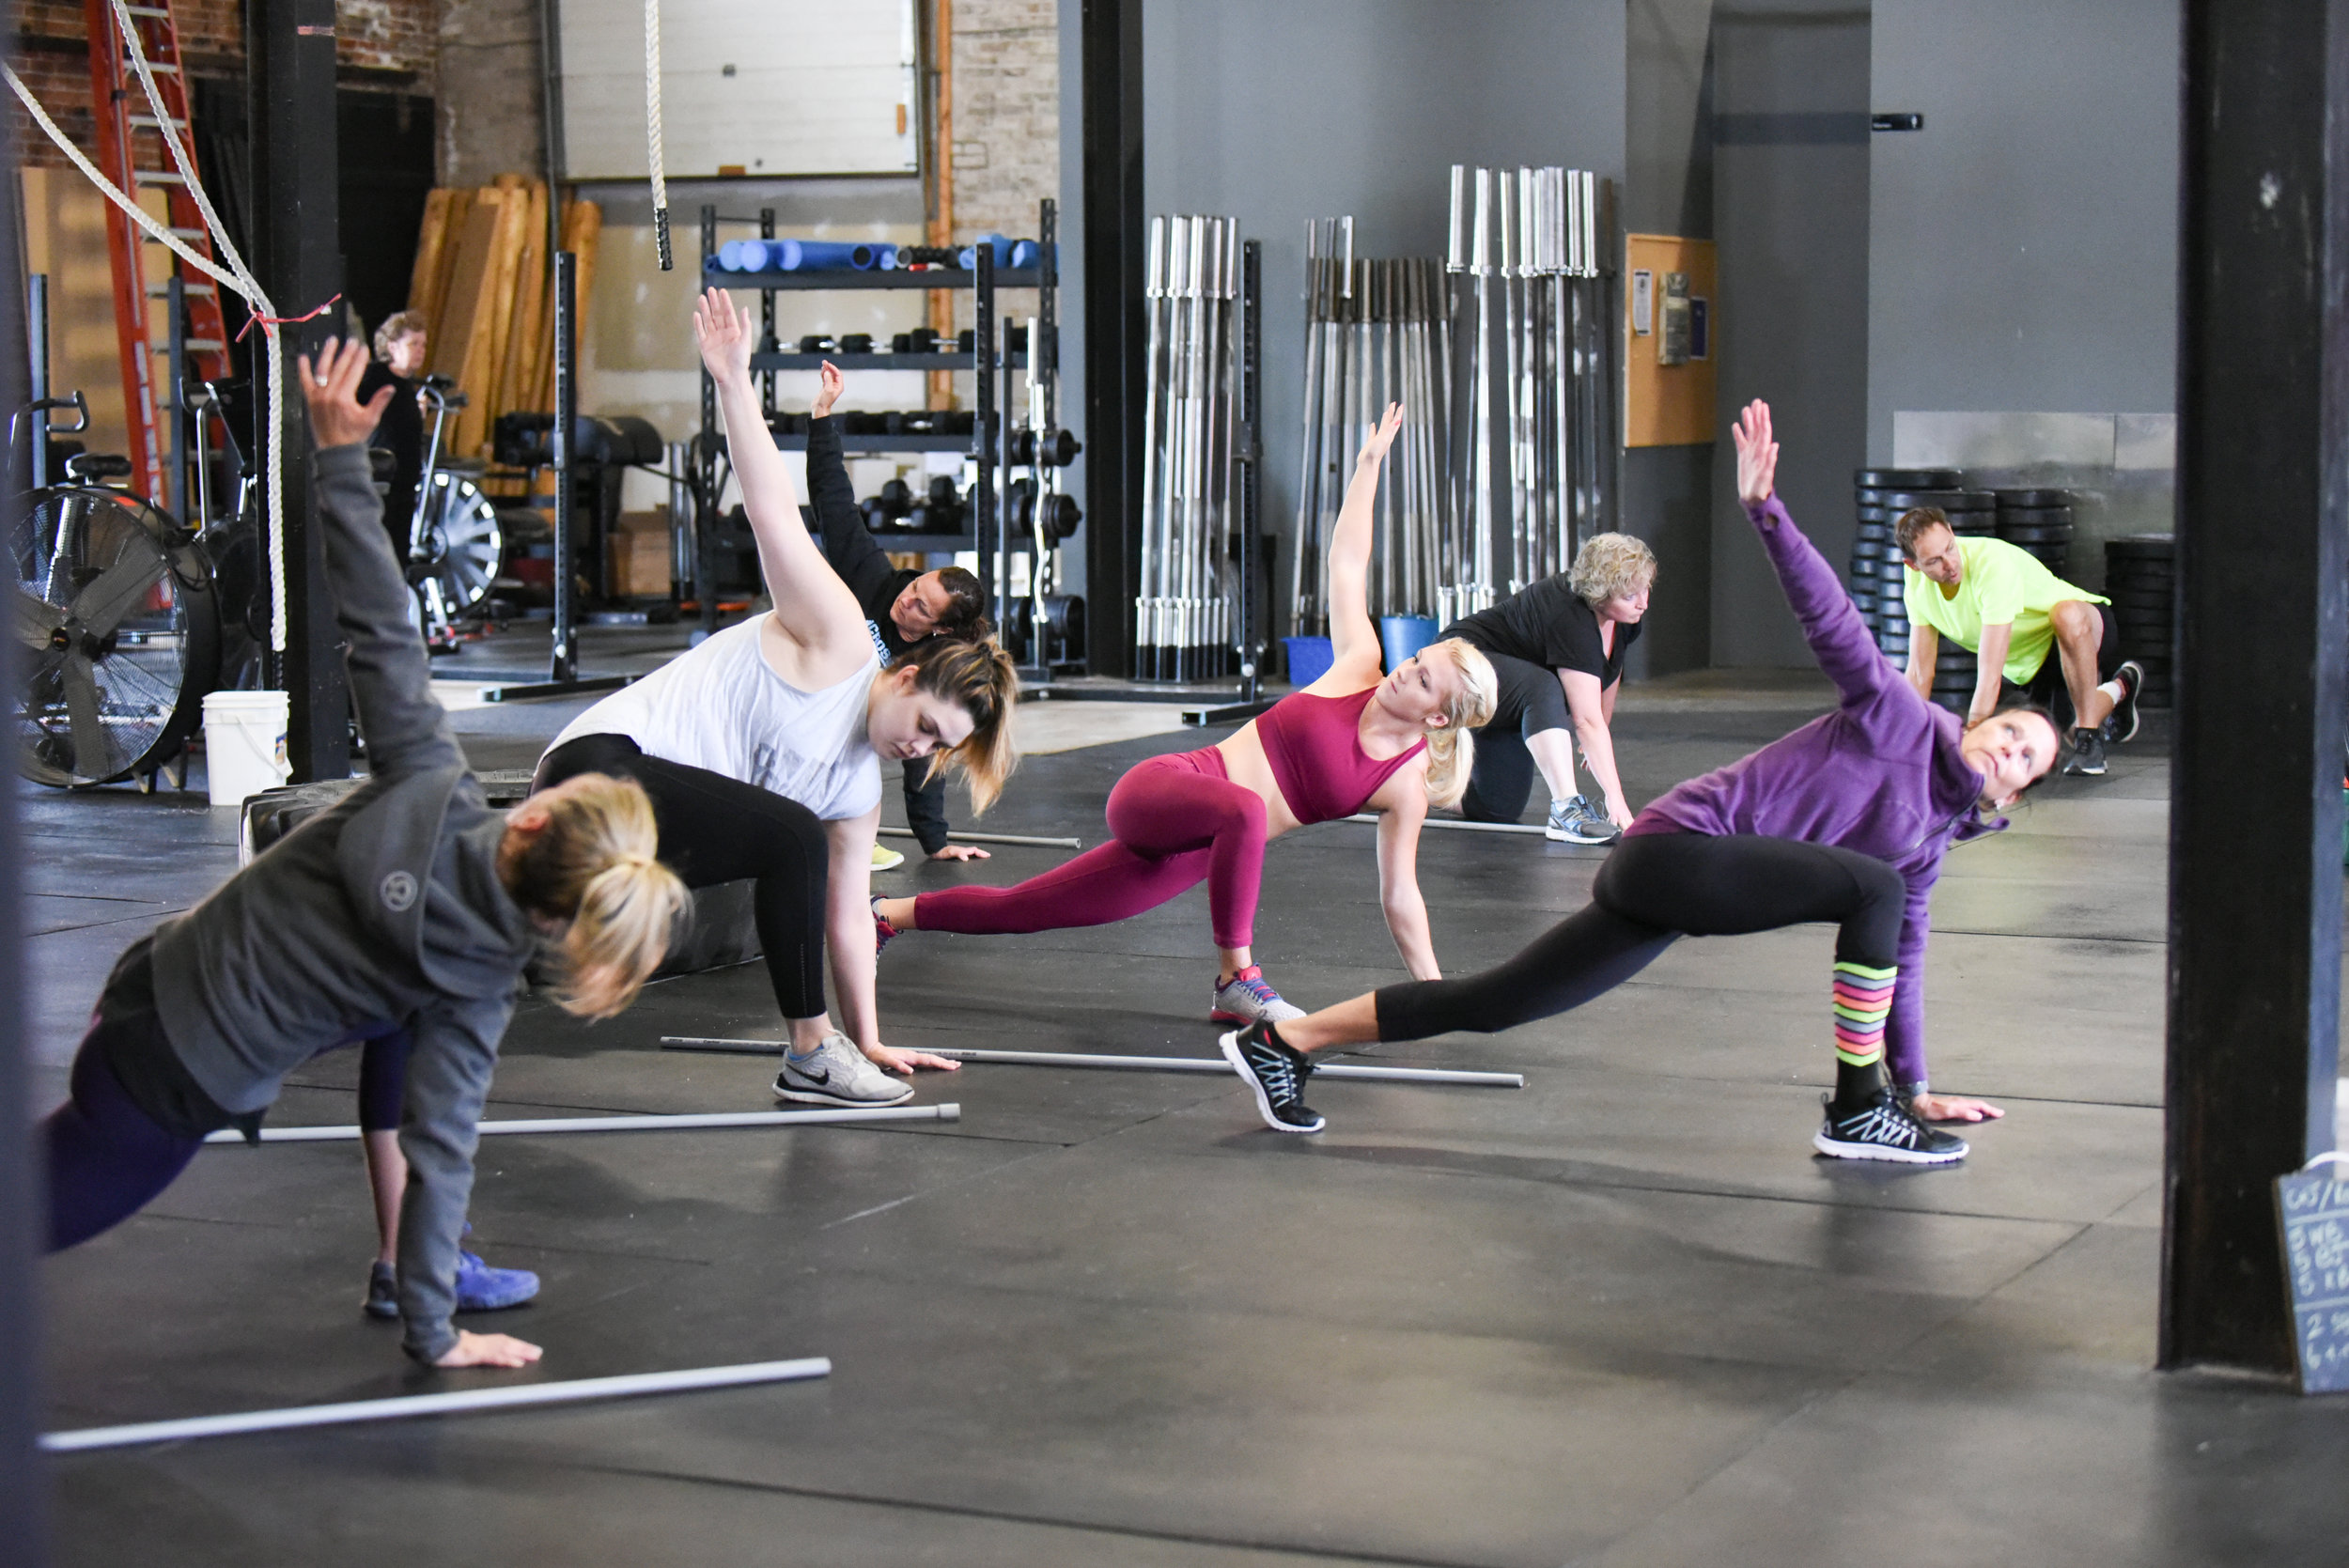 Group Training. - Far more than a group fitness class, CrossFit is individual coaching in a group setting.We offer 3 class styles all included in our membership.CrossFit WODs, BURN & BUILD.